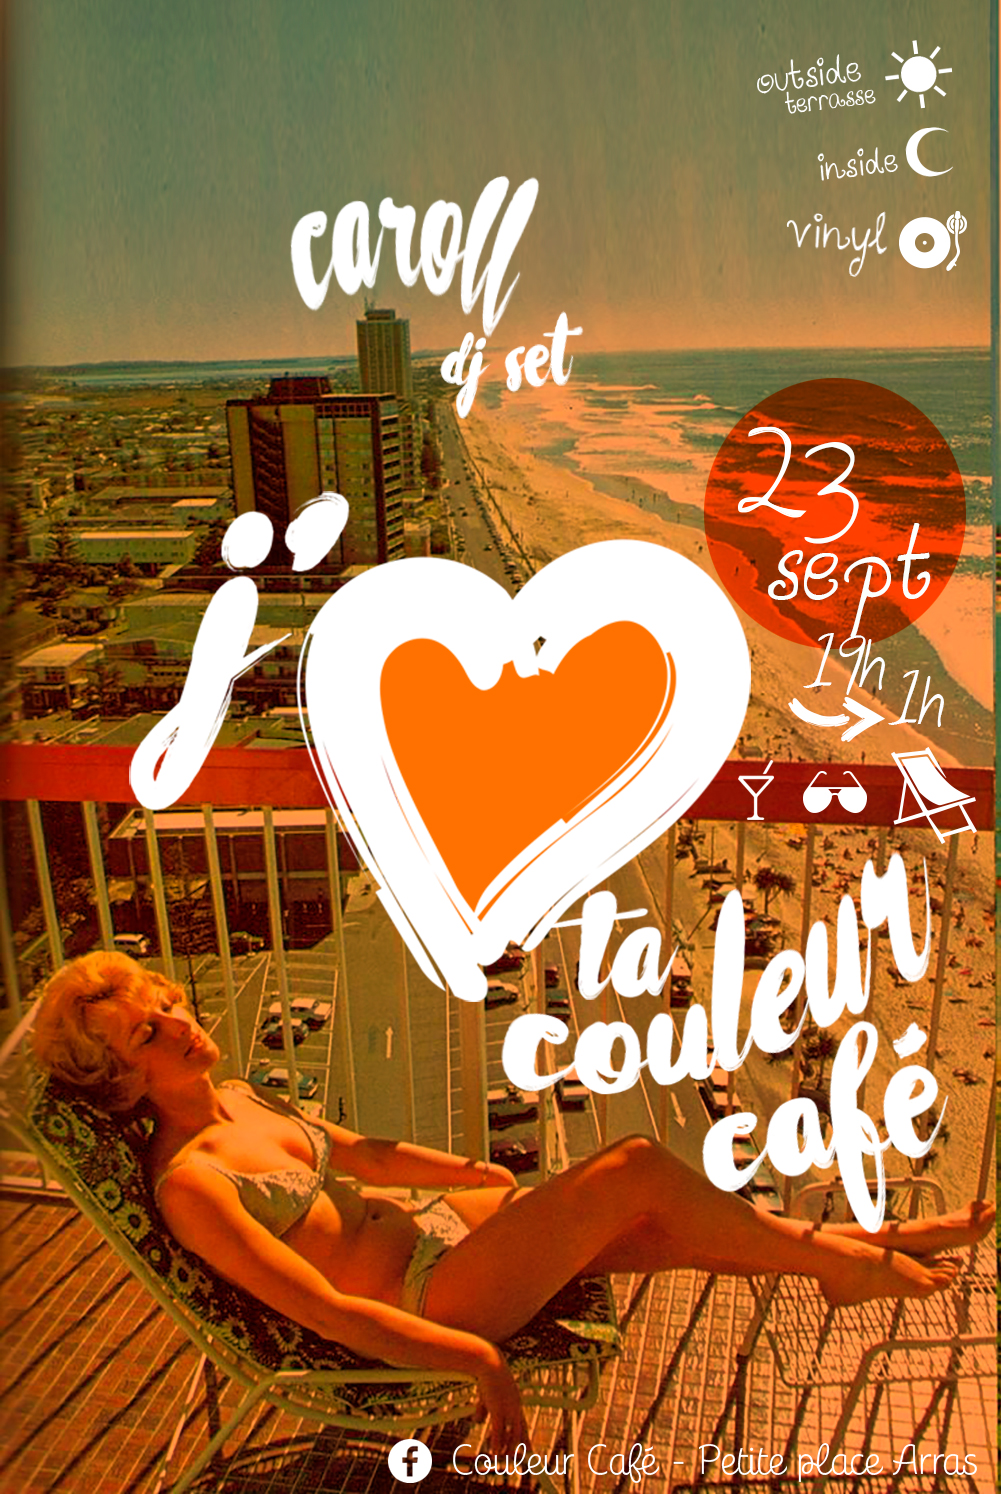 J'aime ta couleur – Café mix by Caroll